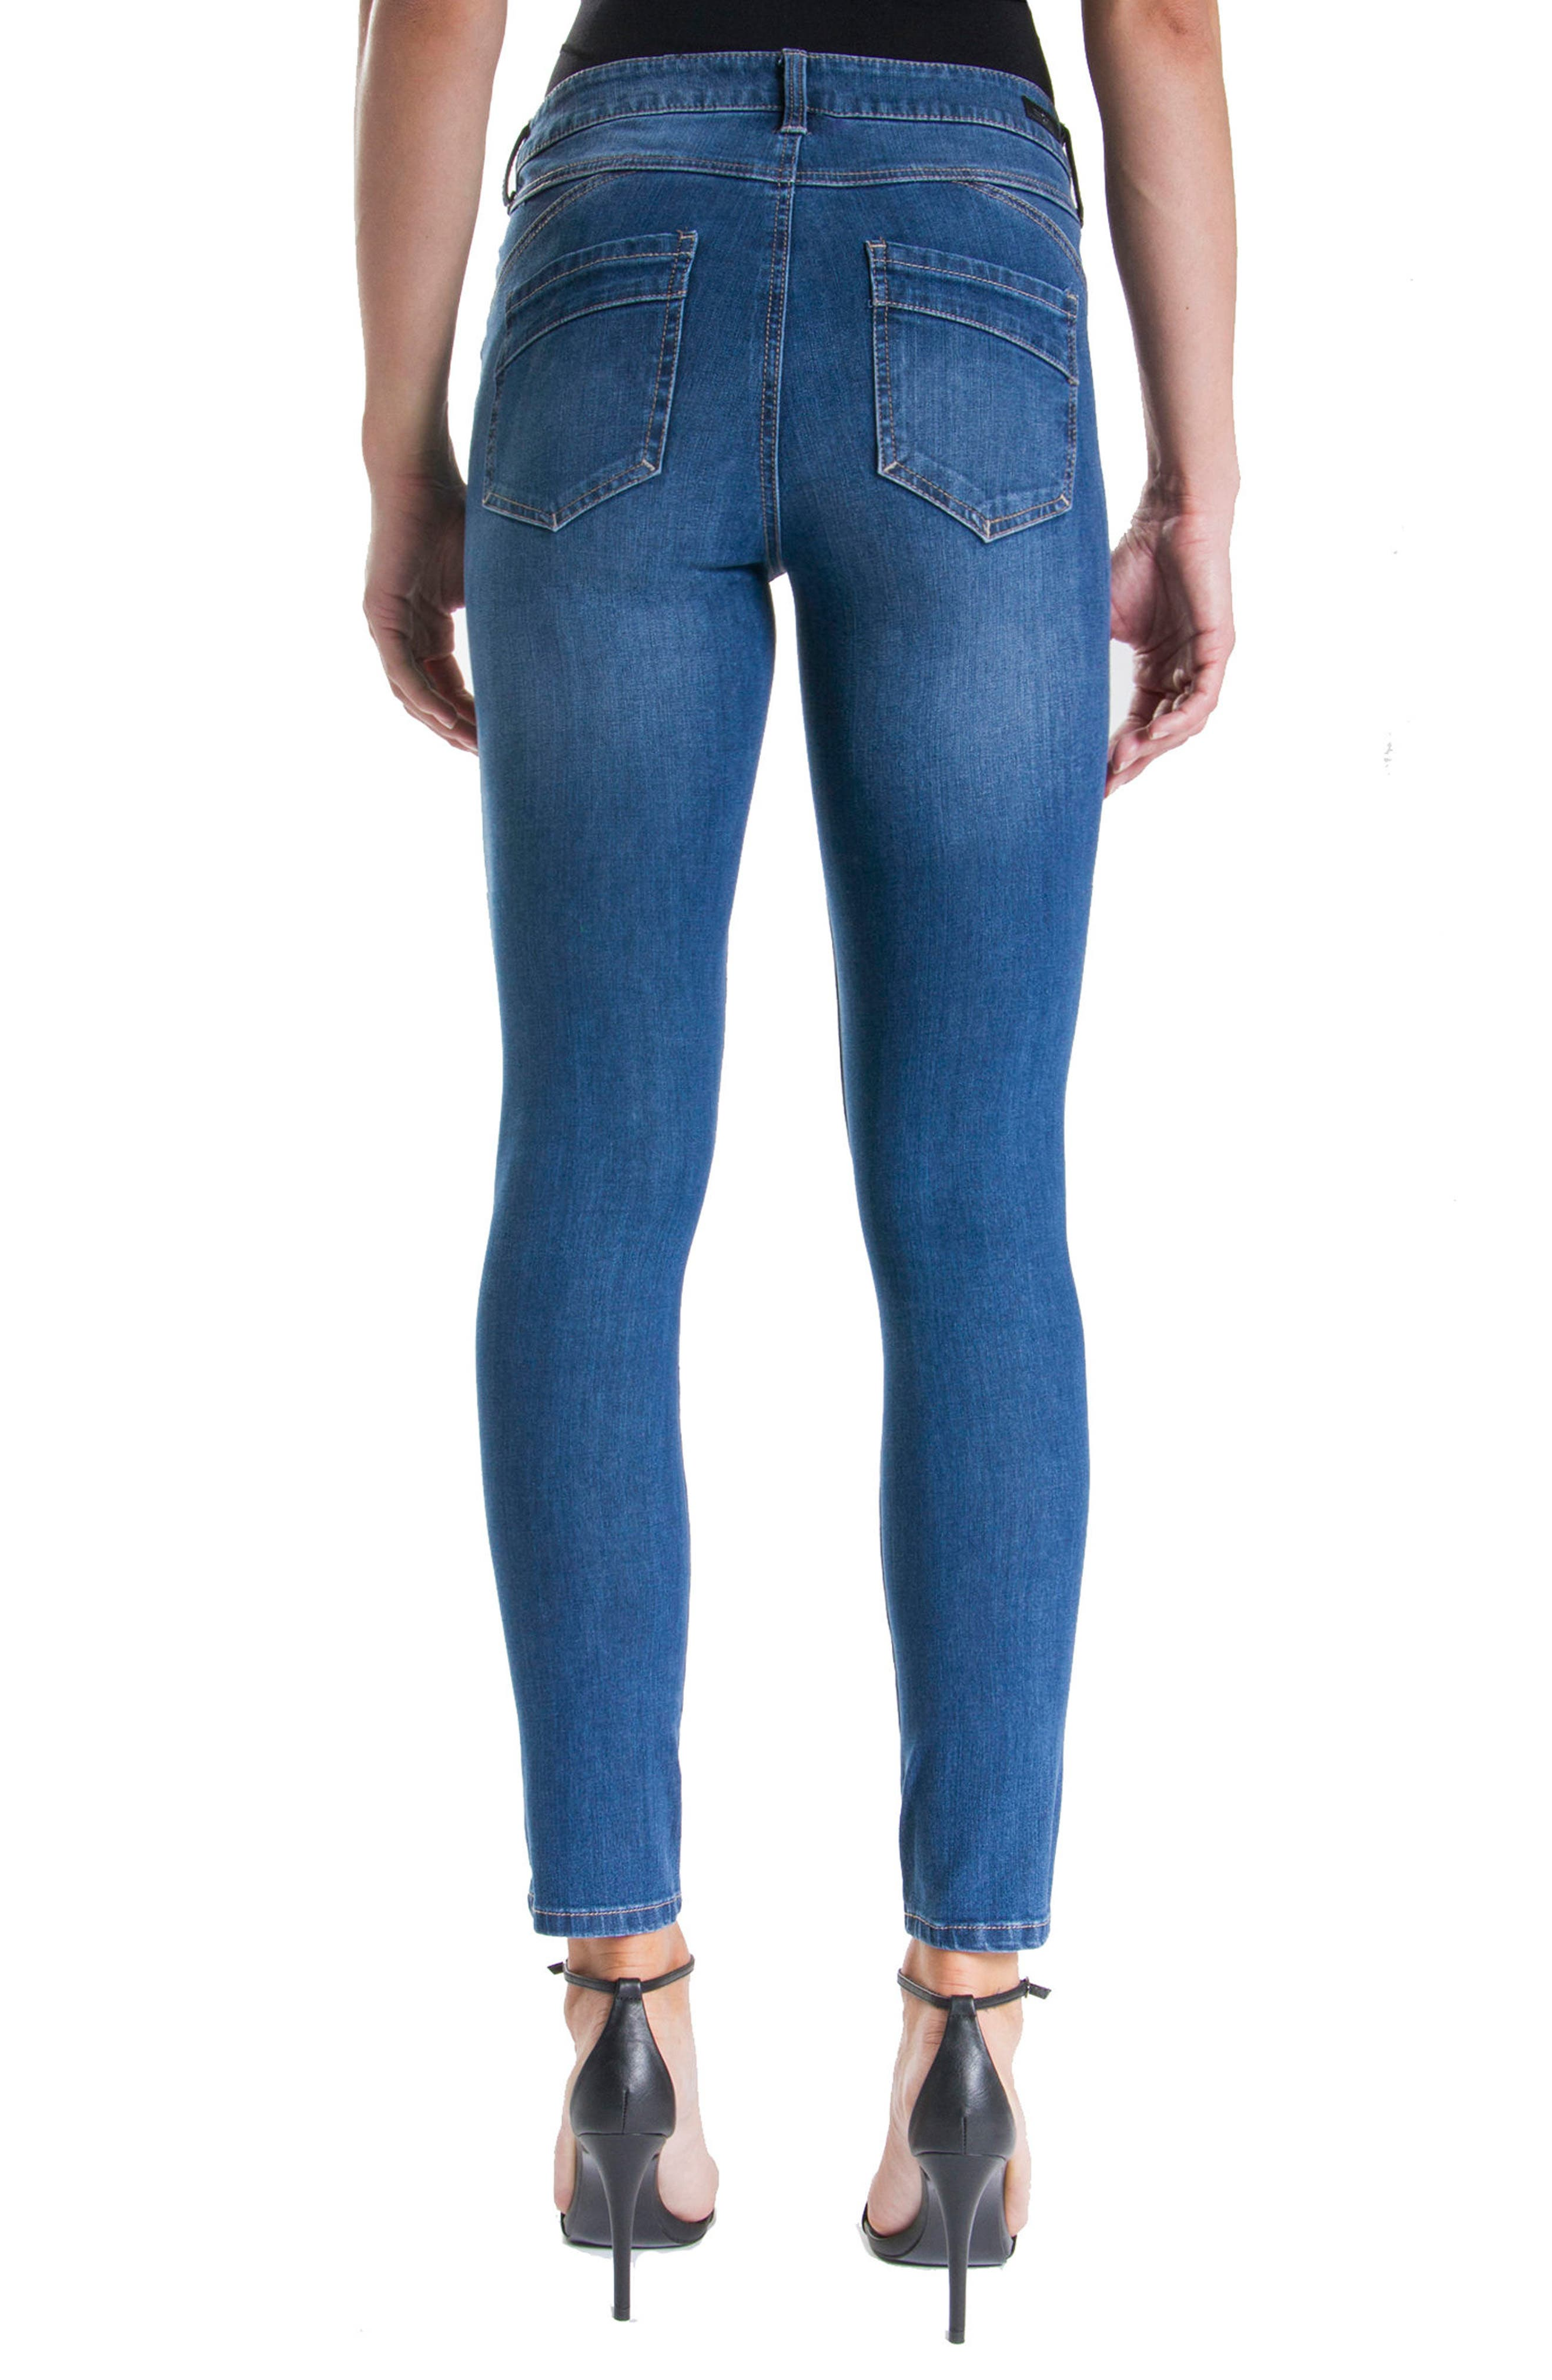 Jeans Company Piper Hugger Lift Sculpt Ankle Skinny Jeans,                             Alternate thumbnail 6, color,